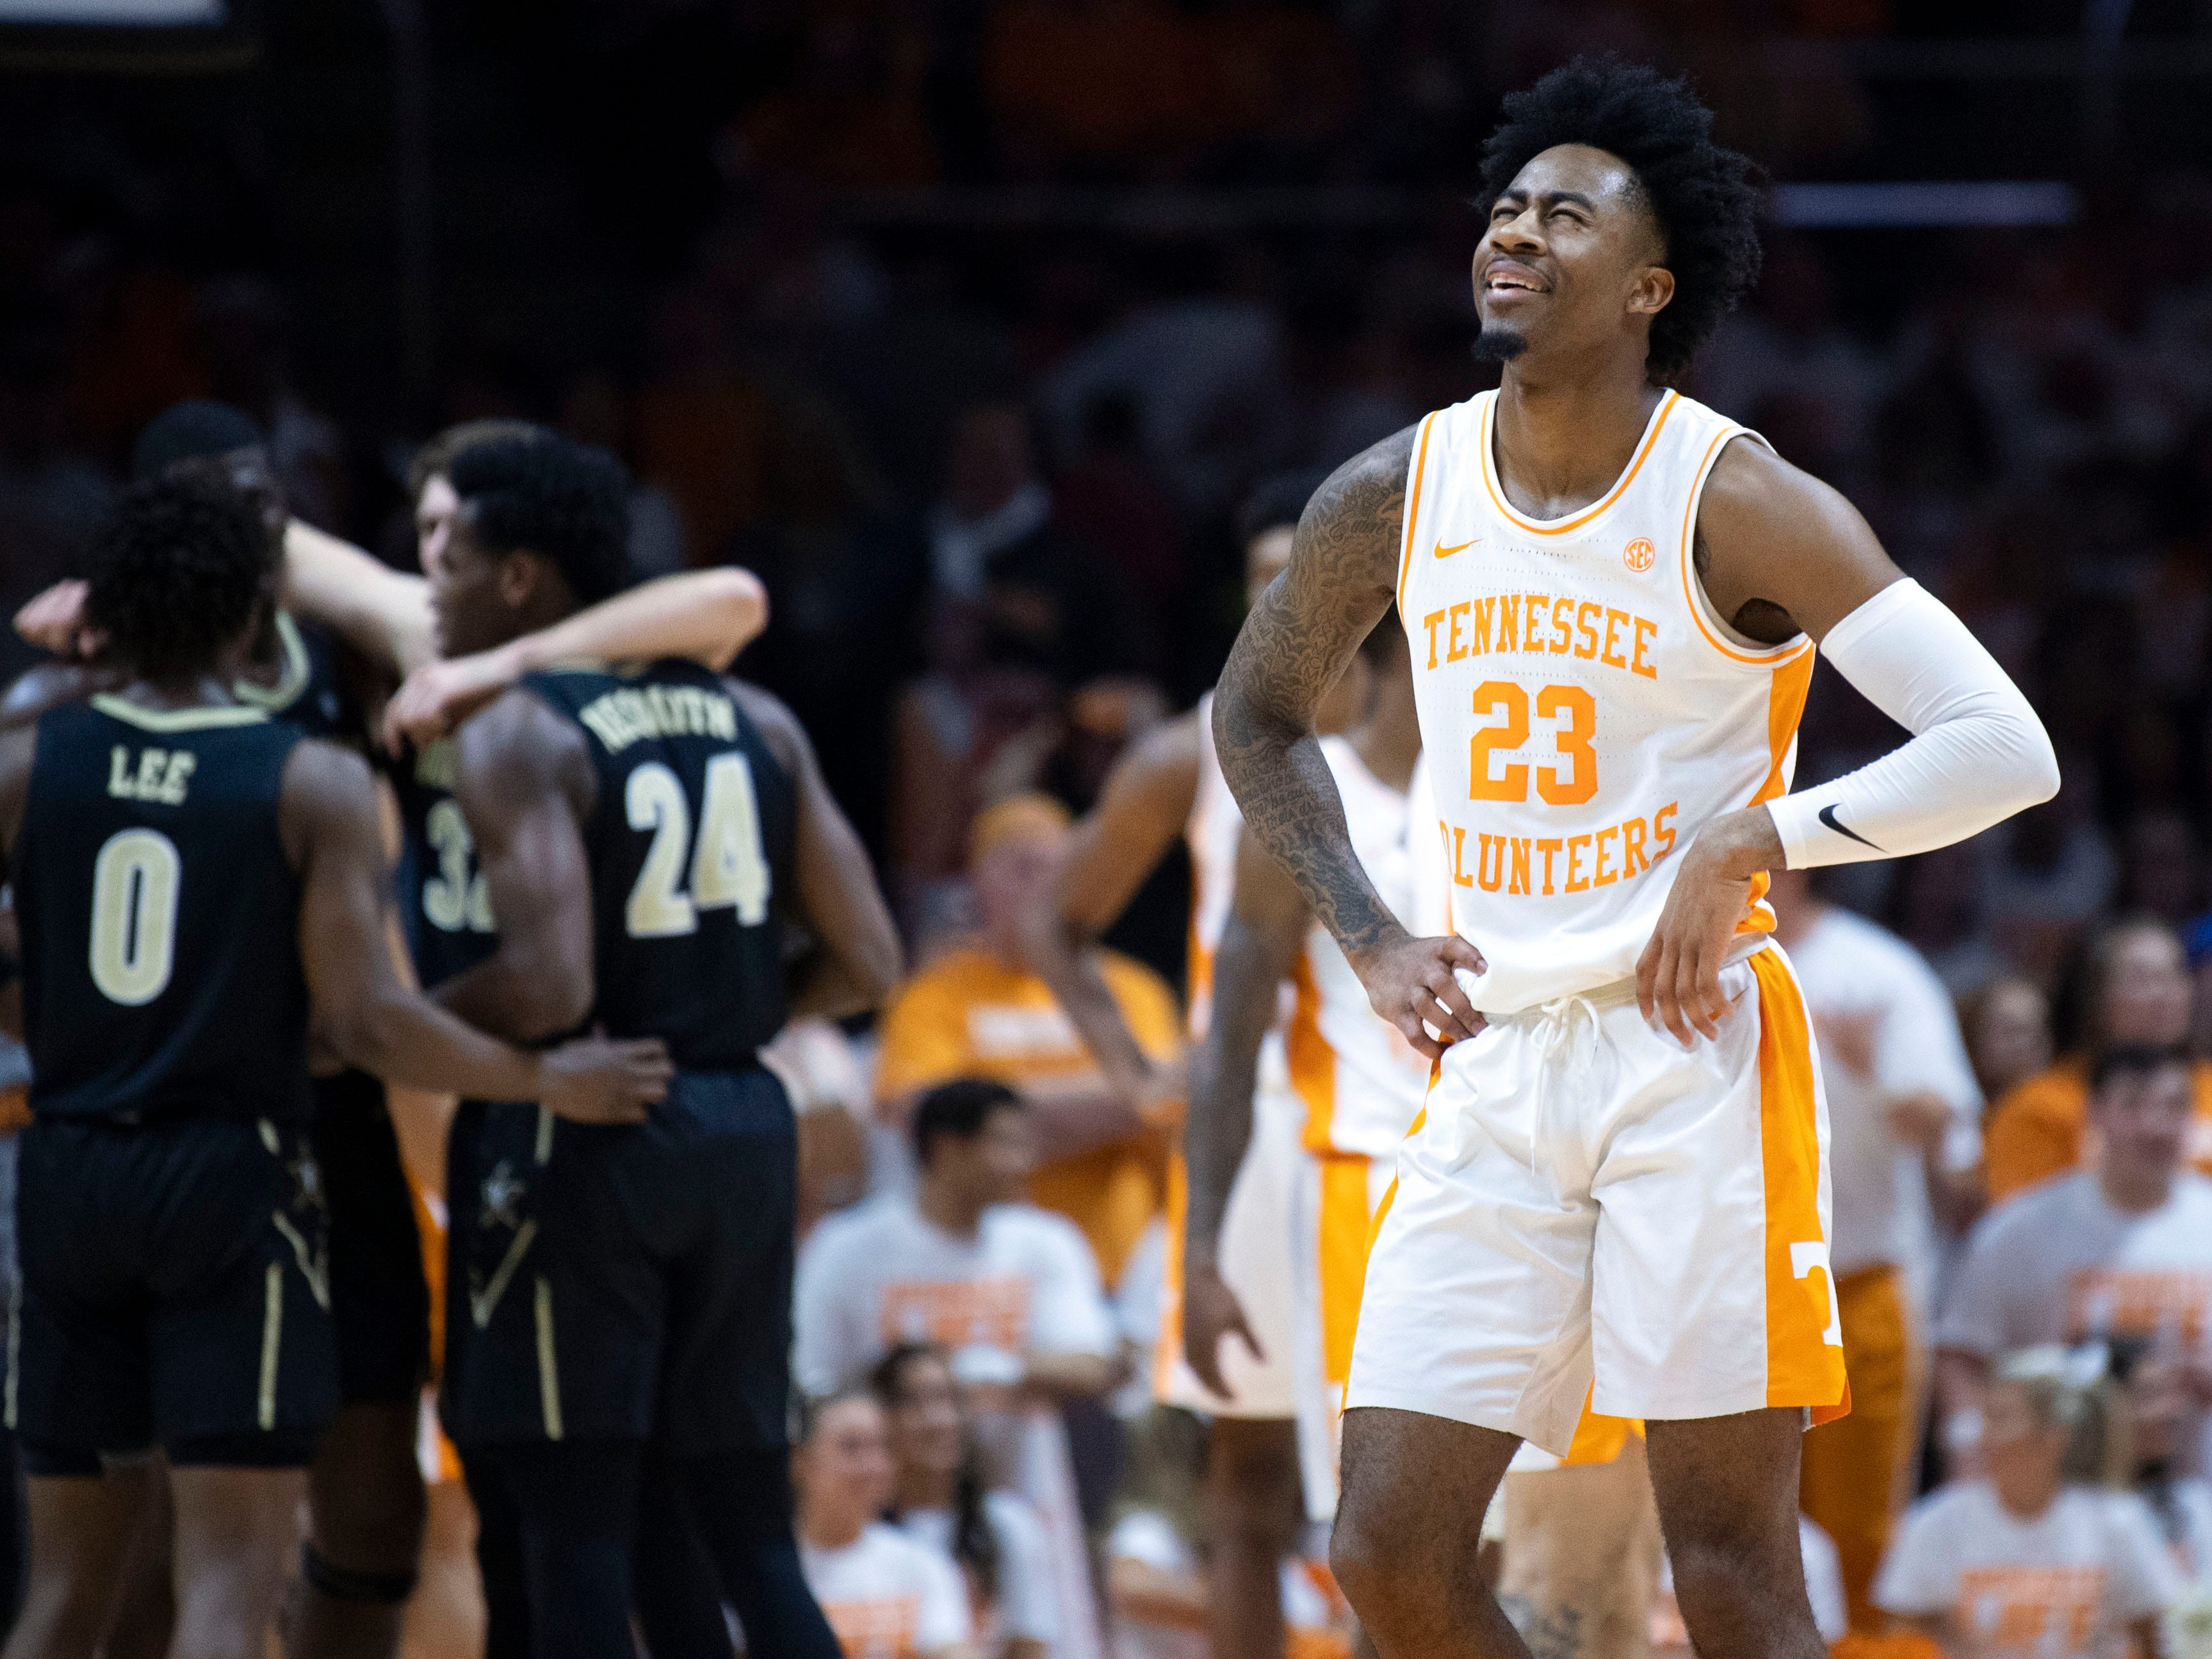 Tennessee's Jordan Bowden (23) reacts after a foul was called on him in the game against Vanderbilt on Tuesday, February 19, 2019.